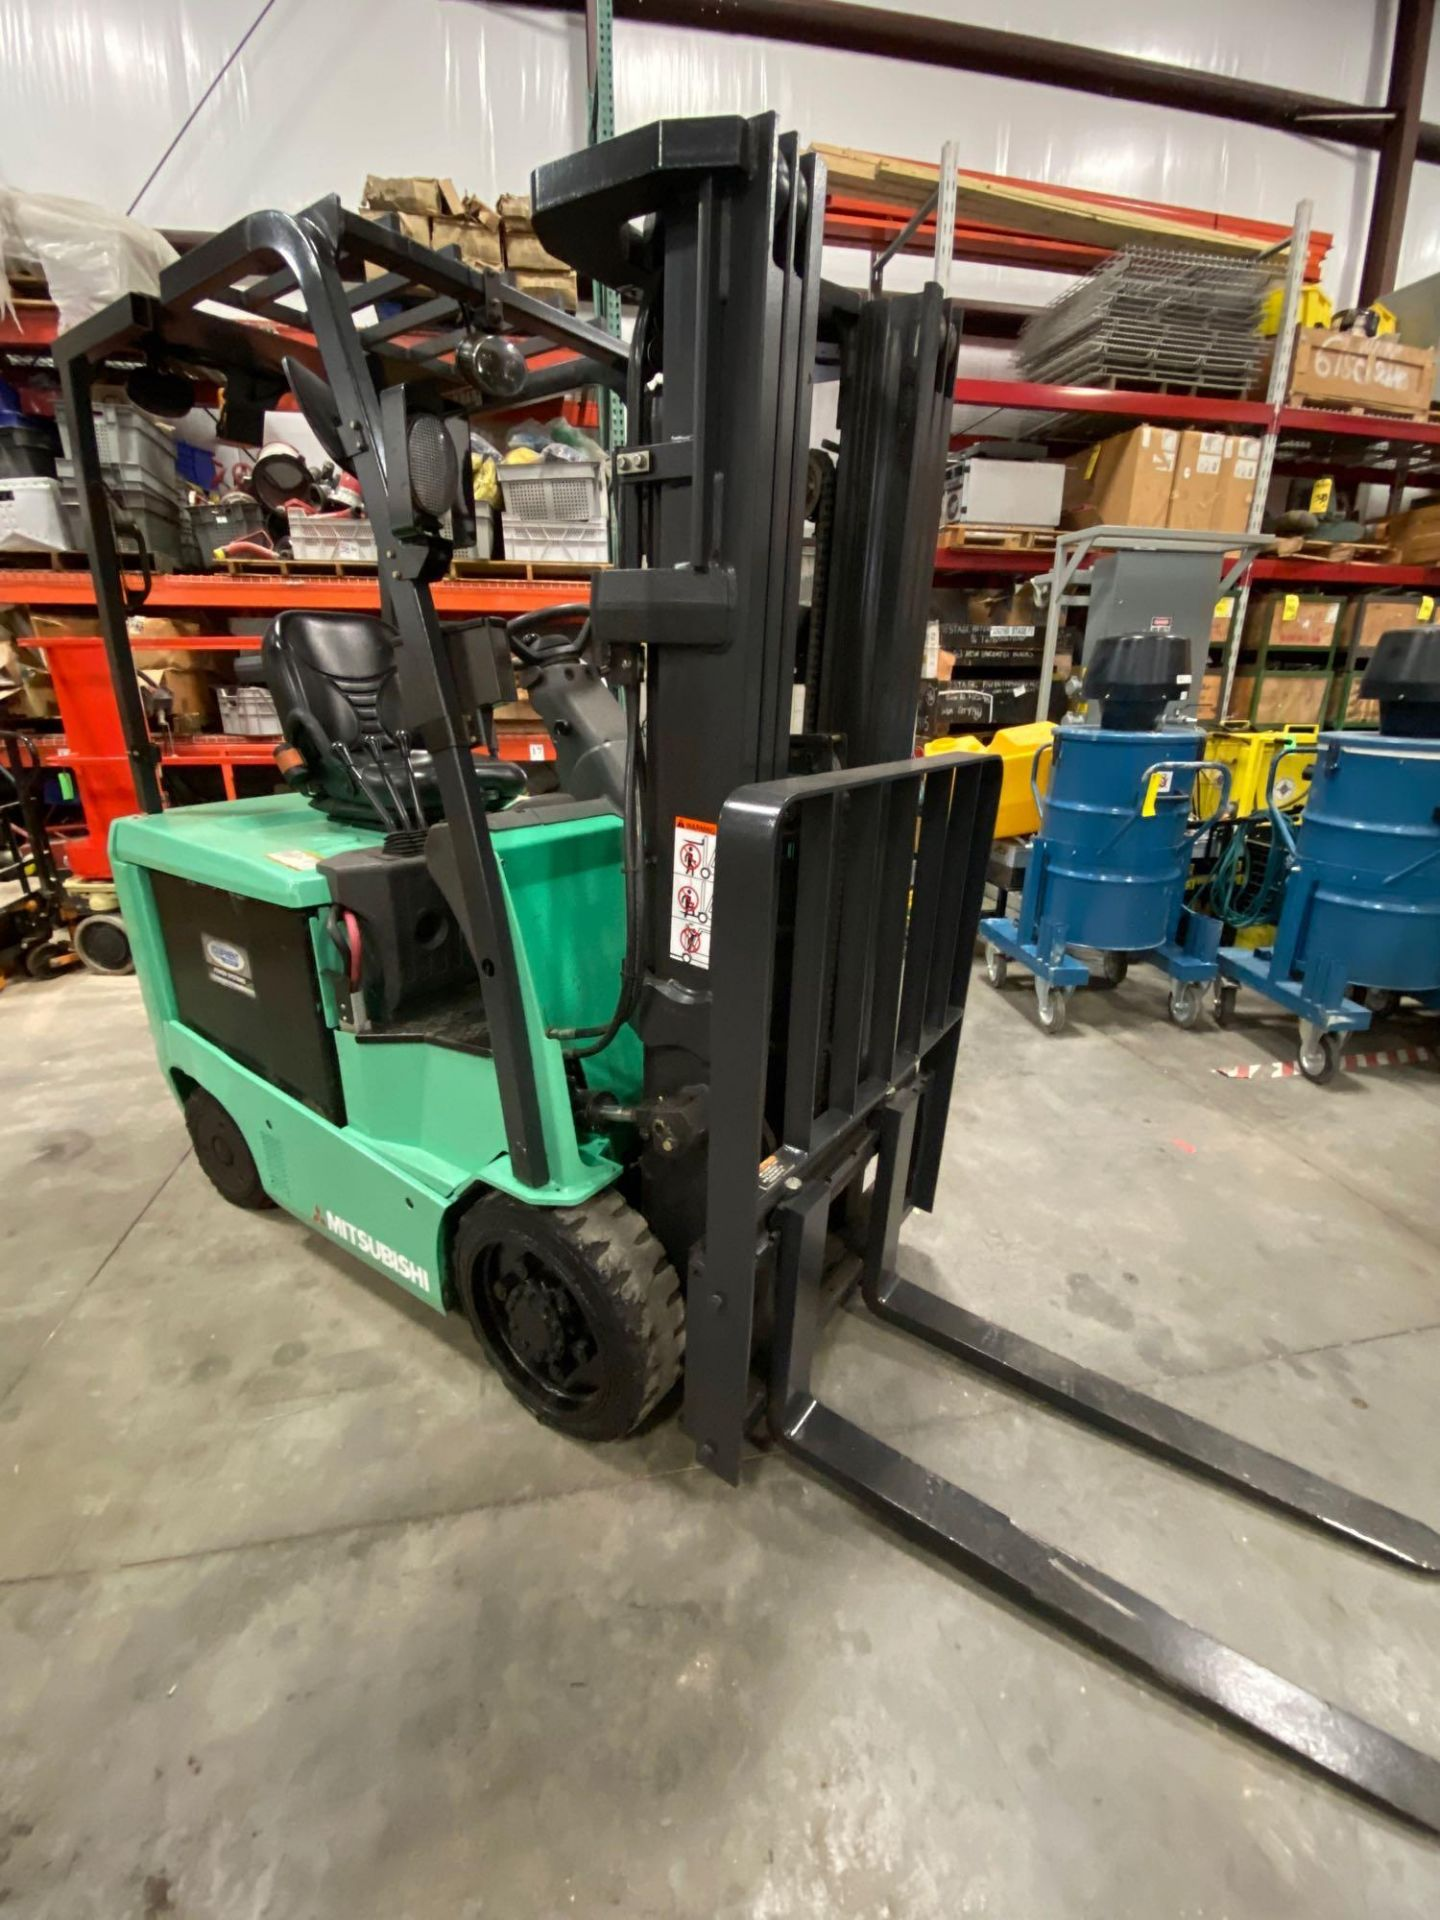 "2015 MITSUBISHI FBC25N2 36V FORKLIFT, APPROX 4500LB CAPACITY, TILT, SIDESHIFT, LIFT 188"" MAX HEIGHT, - Image 3 of 20"